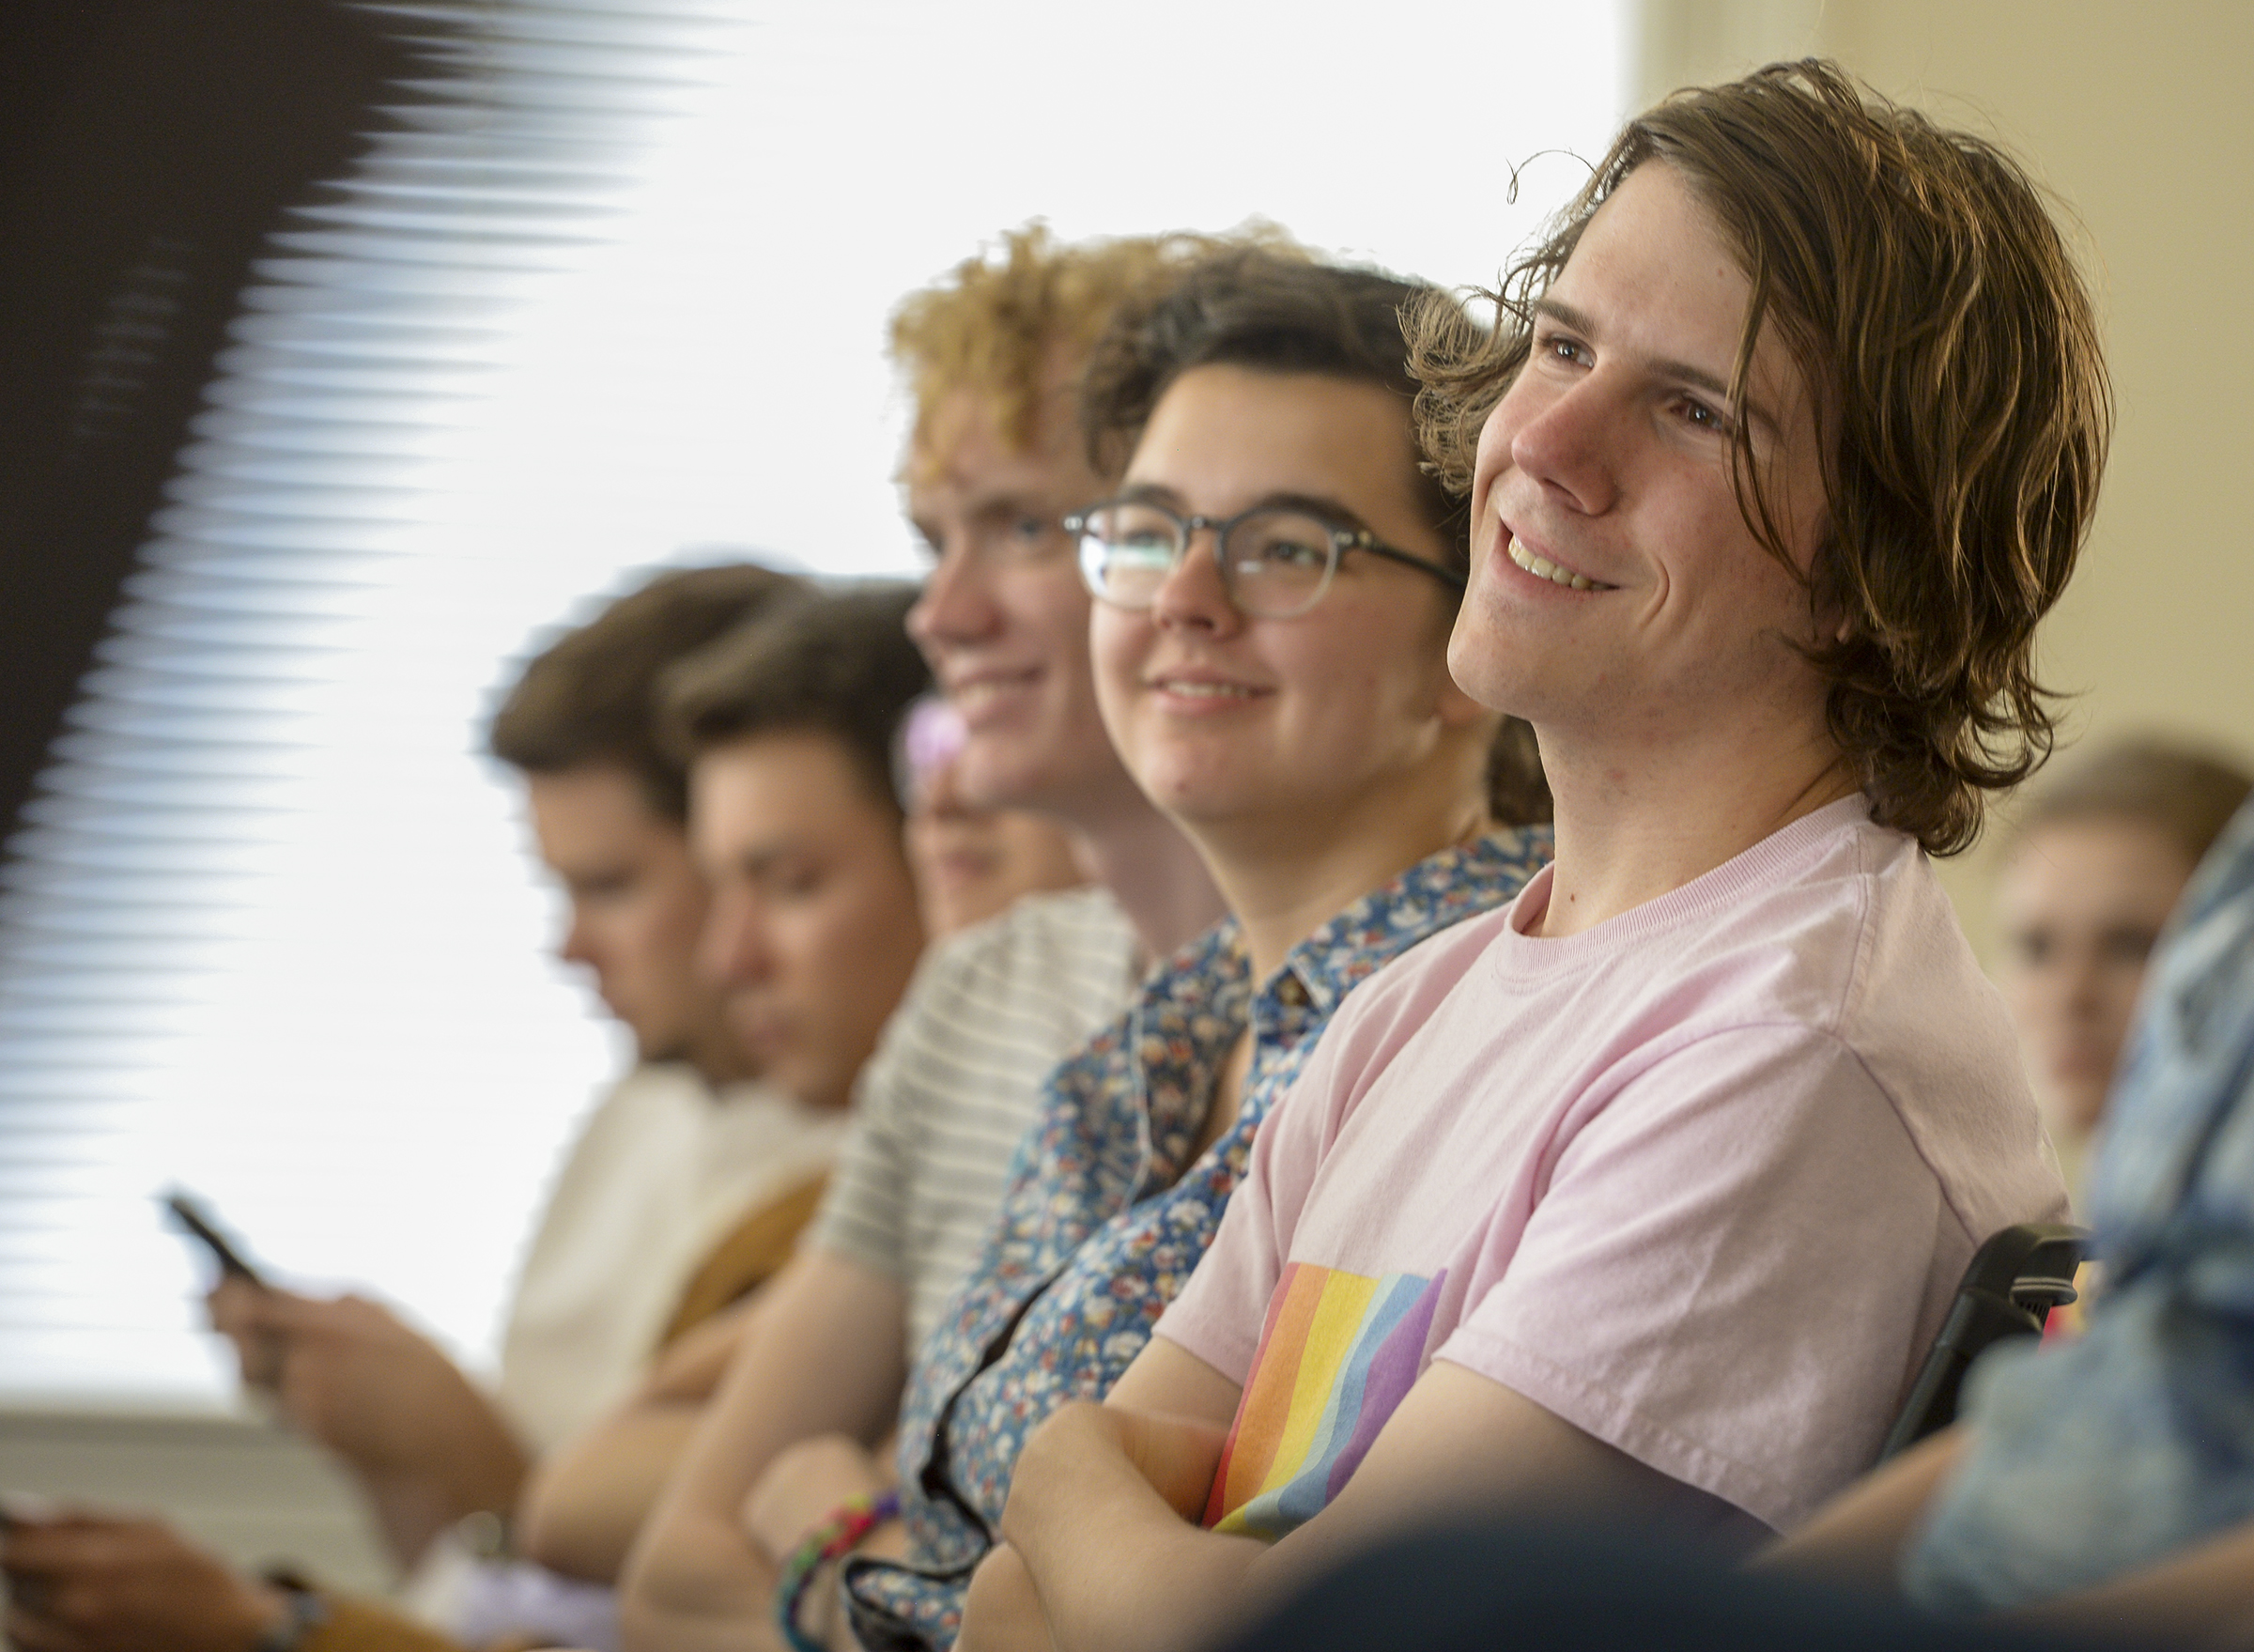 Leah Hogsten  |  The Salt Lake Tribune  LGBT Brigham Young University students meet at the Provo City Library, June 28, 2018 to hold open, respectful discussions on the topic of same-gender attraction. USGA is an organization for LGBT Brigham Young University students and their allies to discuss issues relating to homosexuality and the LDS Church.